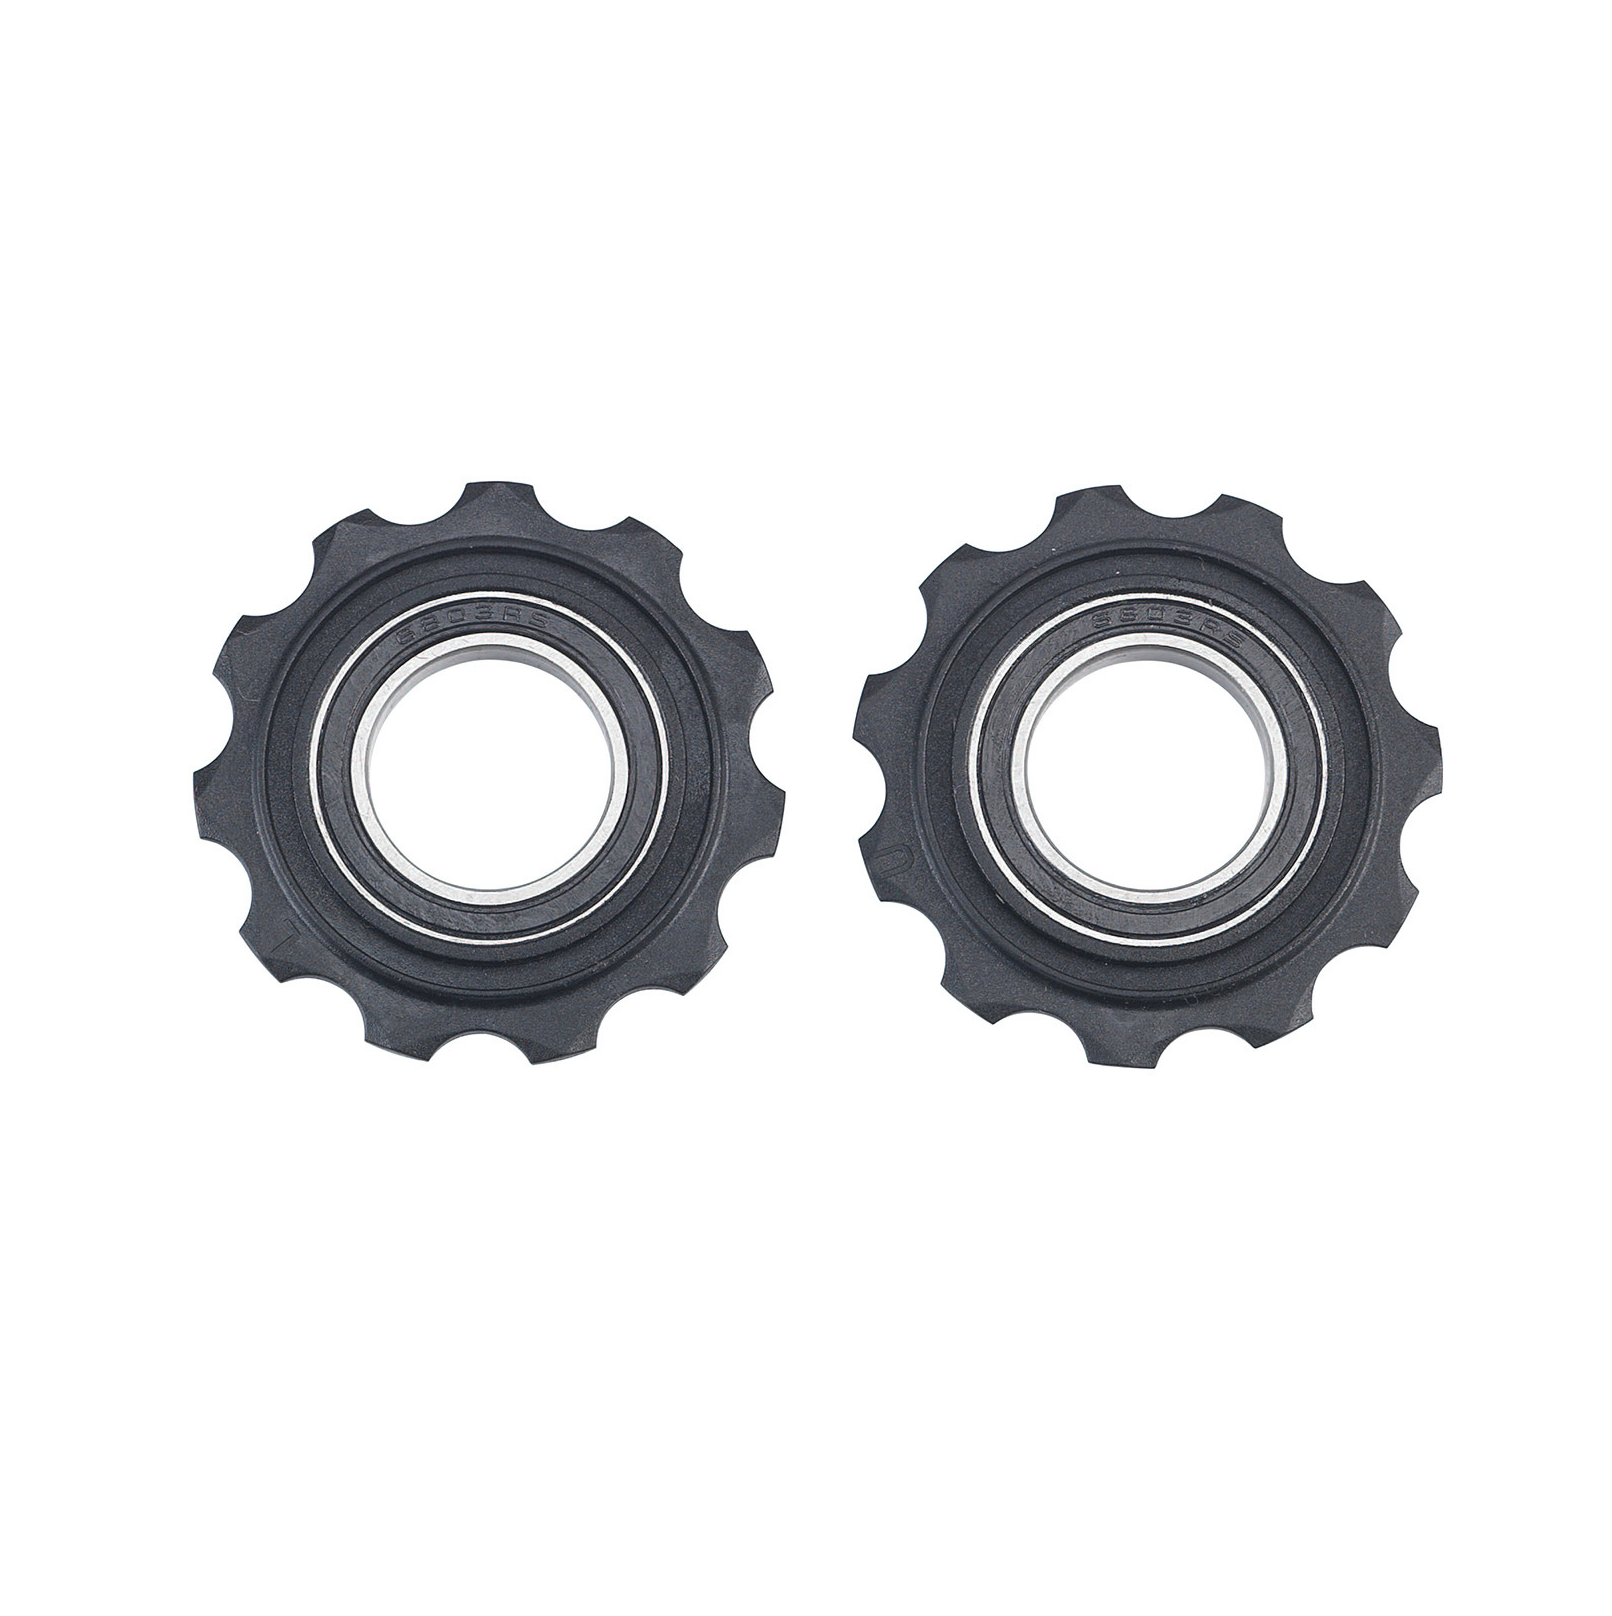 BBB Components > Gears BBB ROLLERBOYS SRAM JOCKEY WHEELS 11T BLACK BDP-05